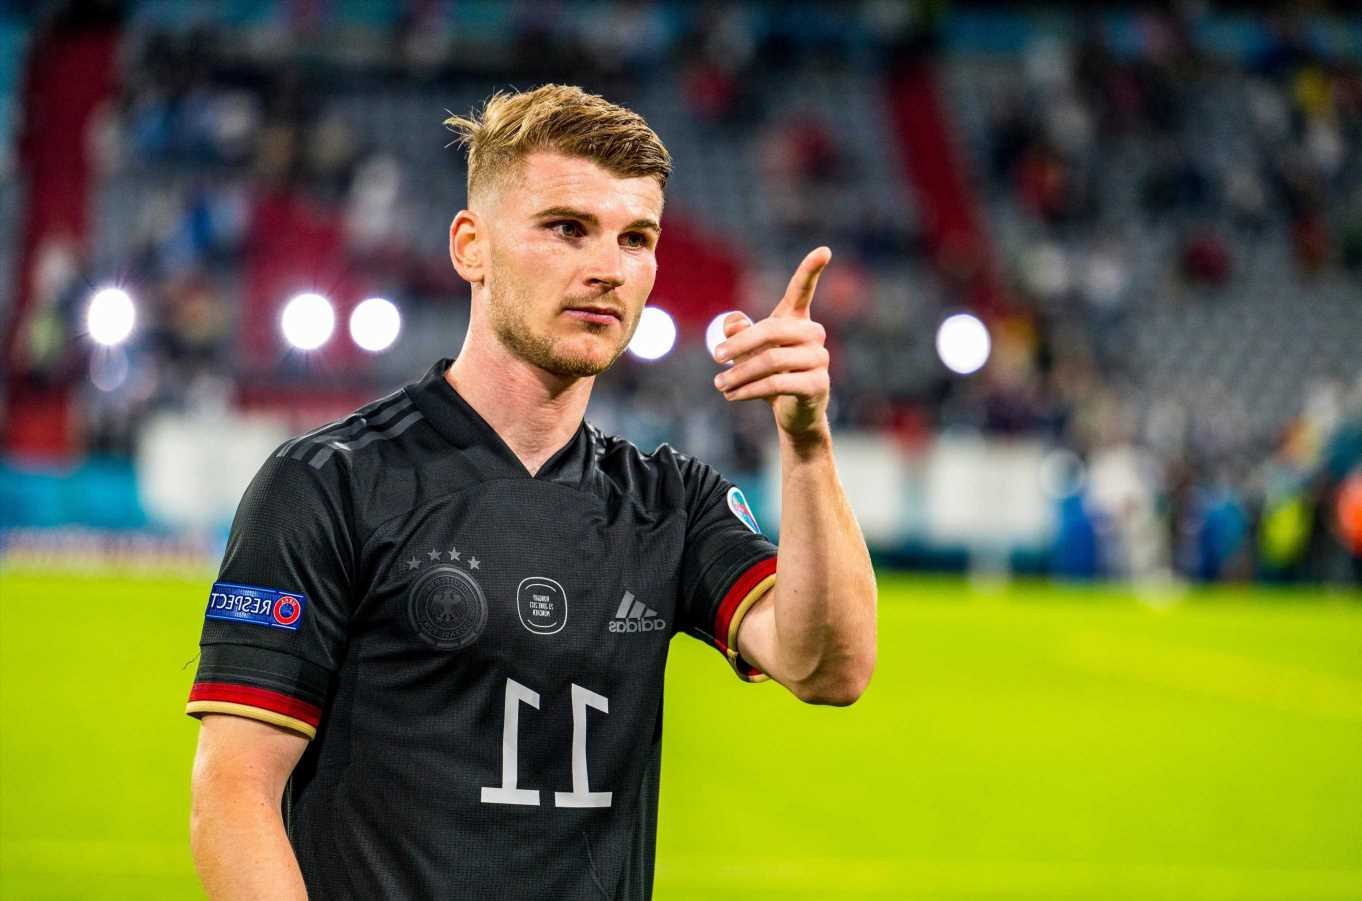 Chelsea boss Thomas Tuchel admits Timo Werner had 'so-so Euros' and expresses worry after wasteful game vs Arsenal